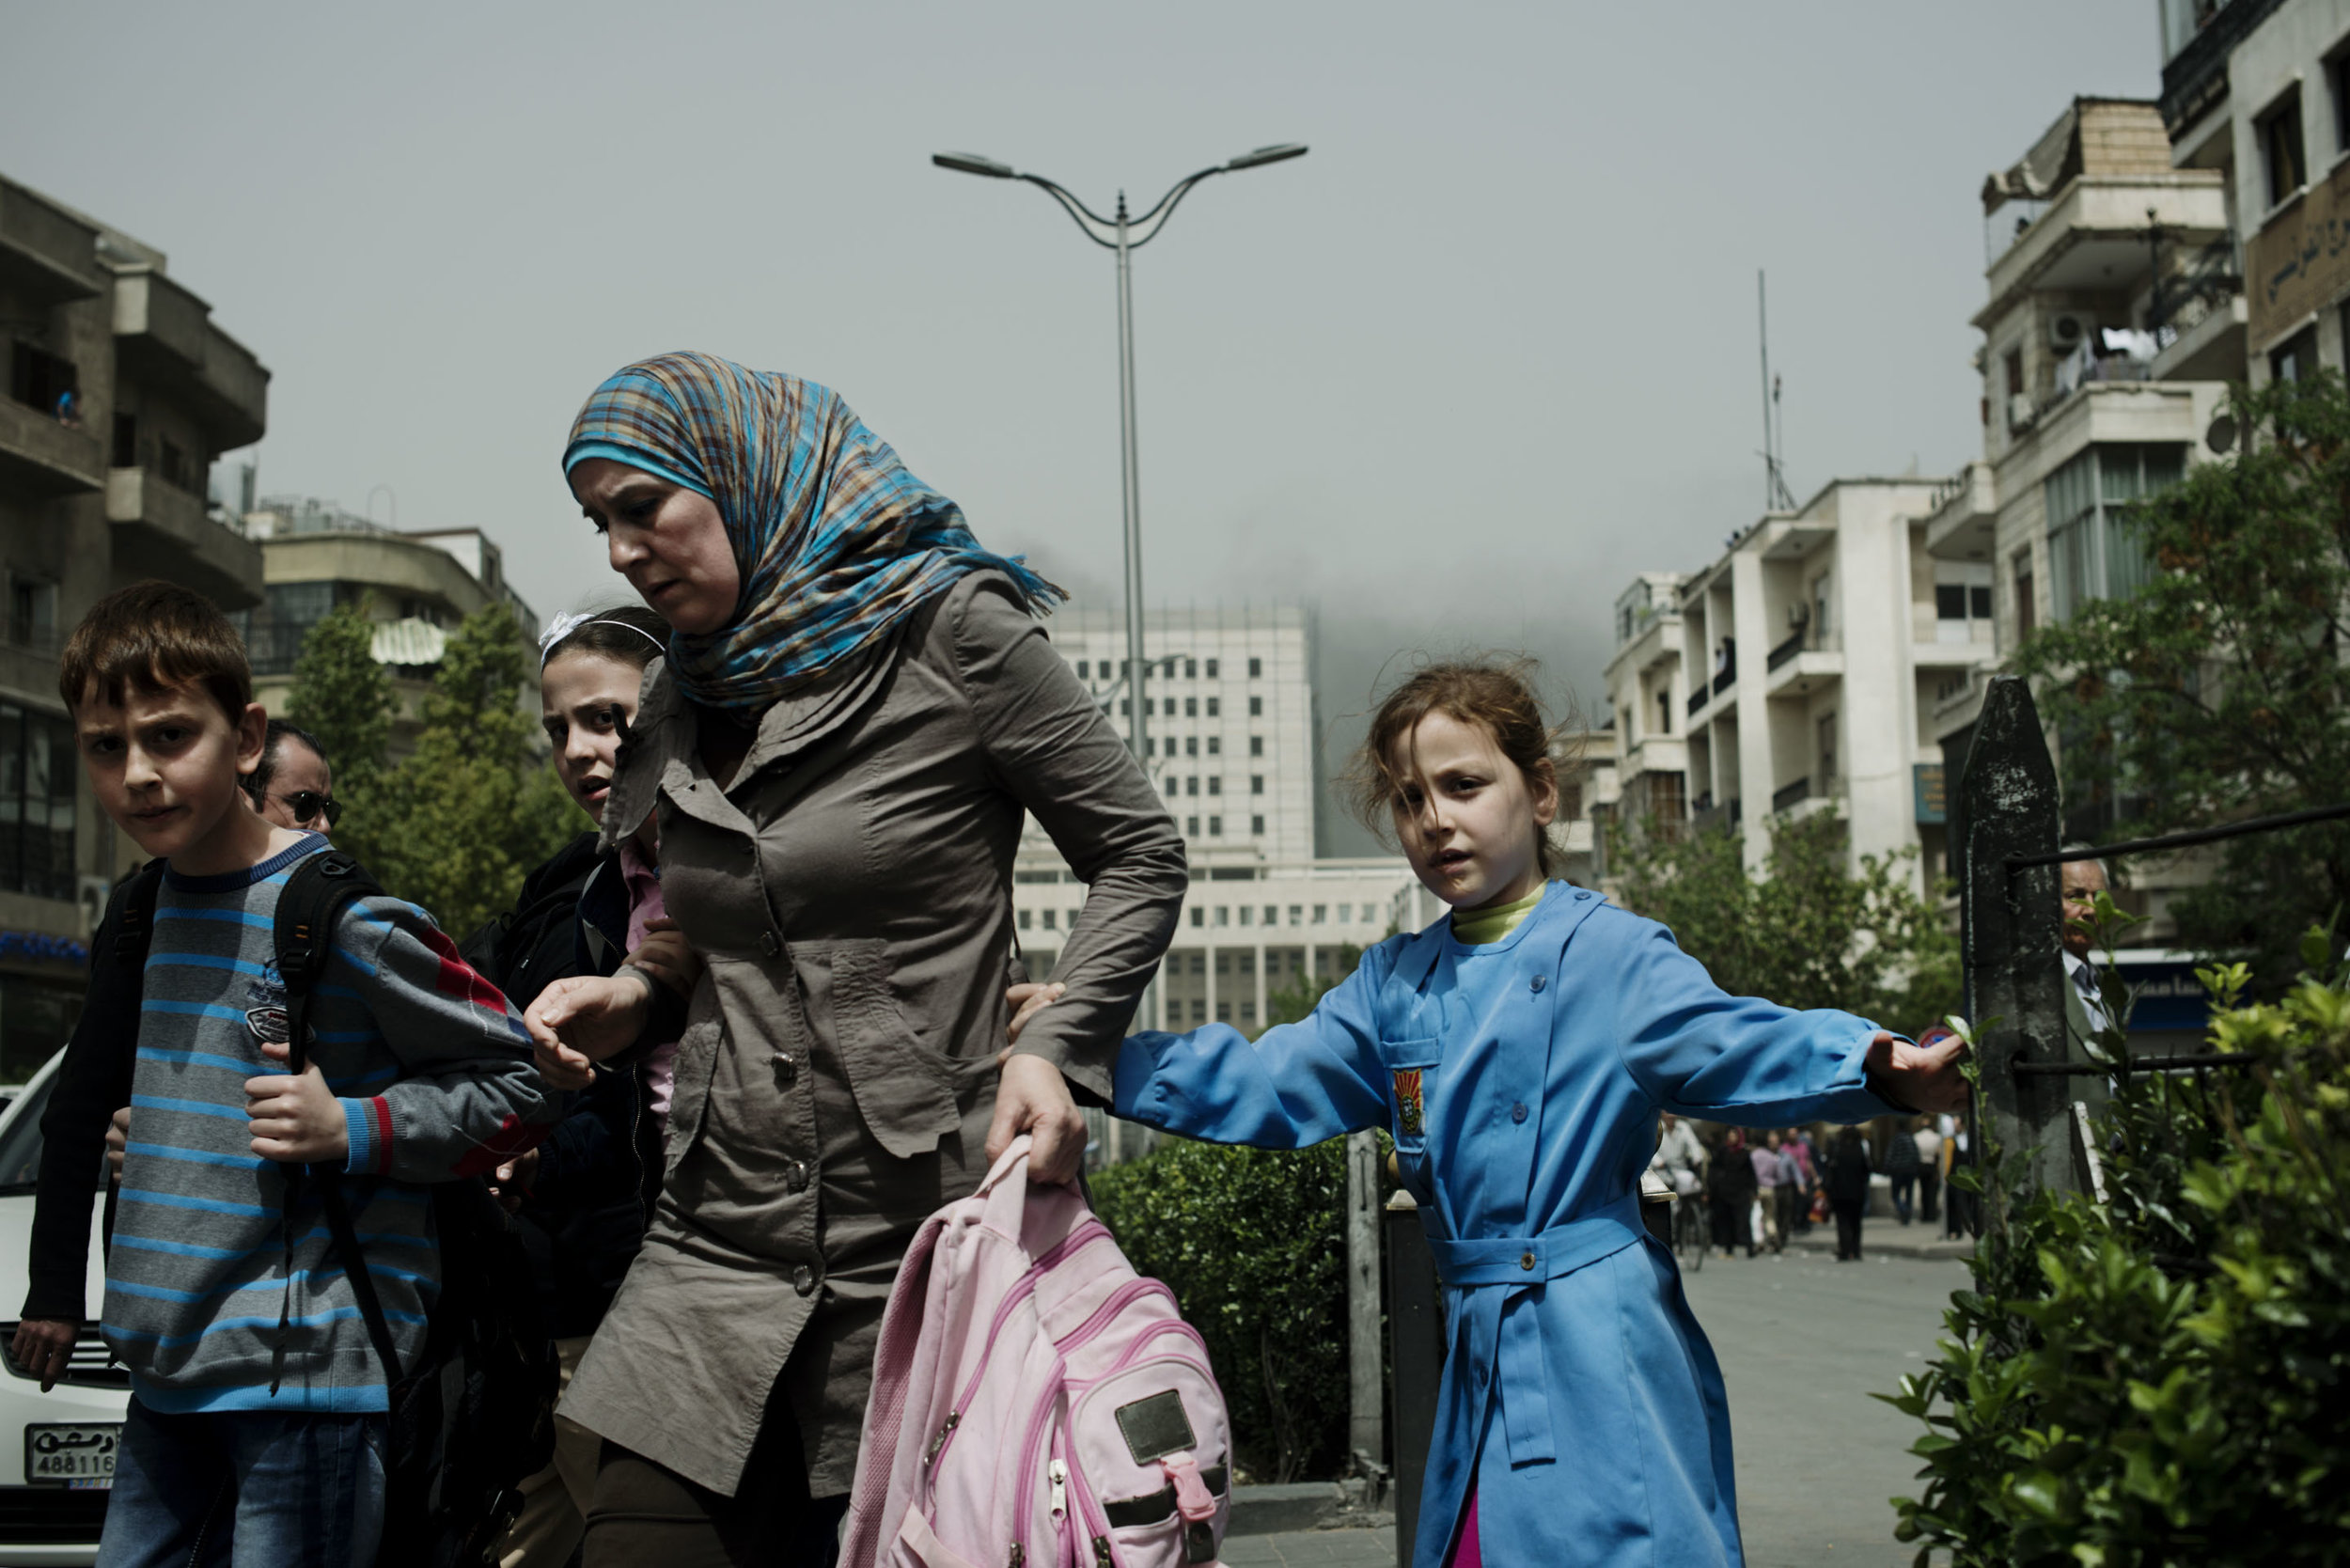 Syria, Damascus, April 2013, A woman rushes her children out of school and away from the scene of a car bomb in central Damascus which killed at least 25 people.